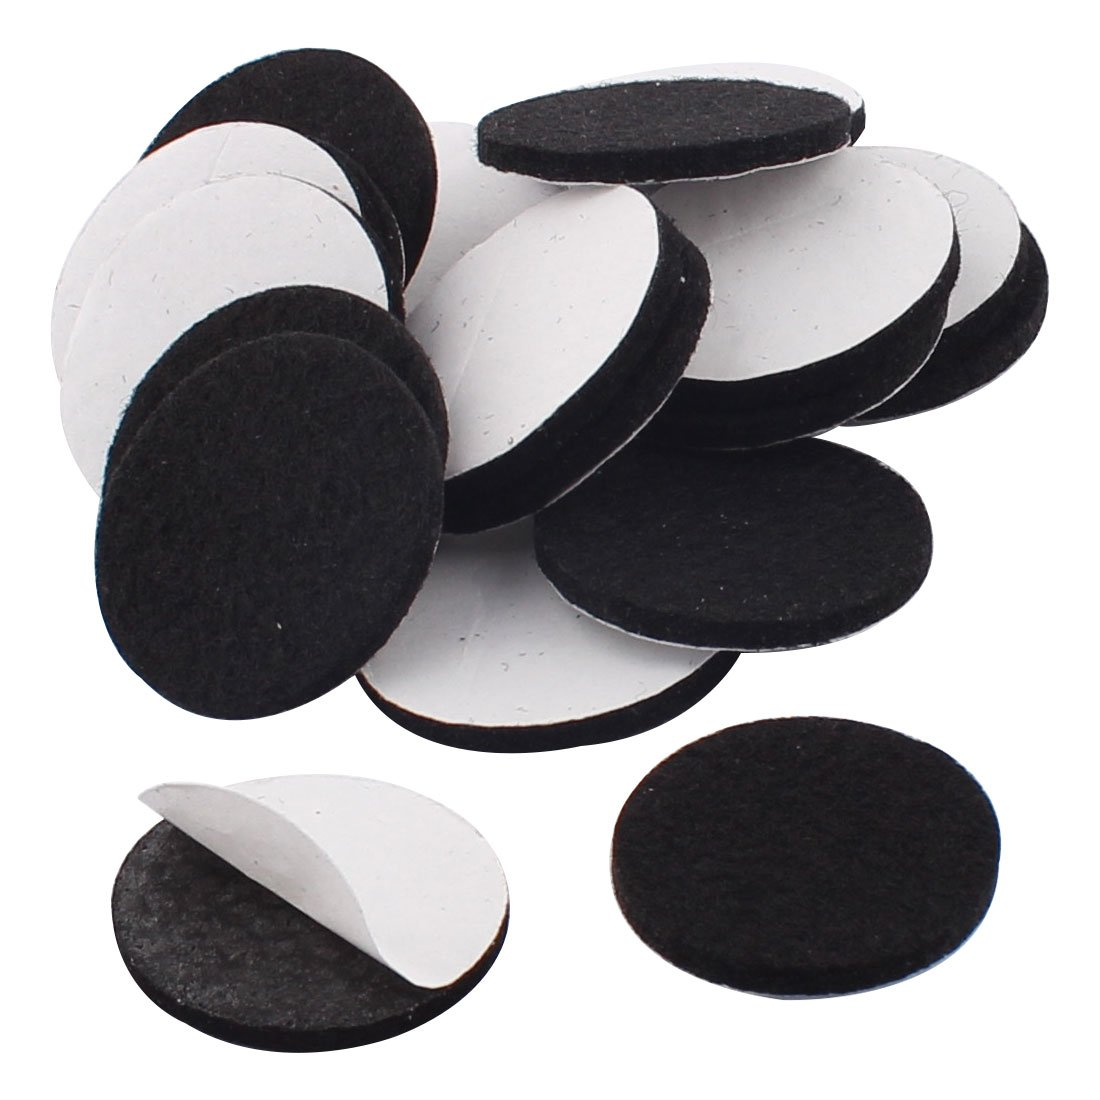 uxcell Home Office Self Stick Protecting Protecter Furniture Felt Pads Mats Cushions 30mm Dia 20pcs Black